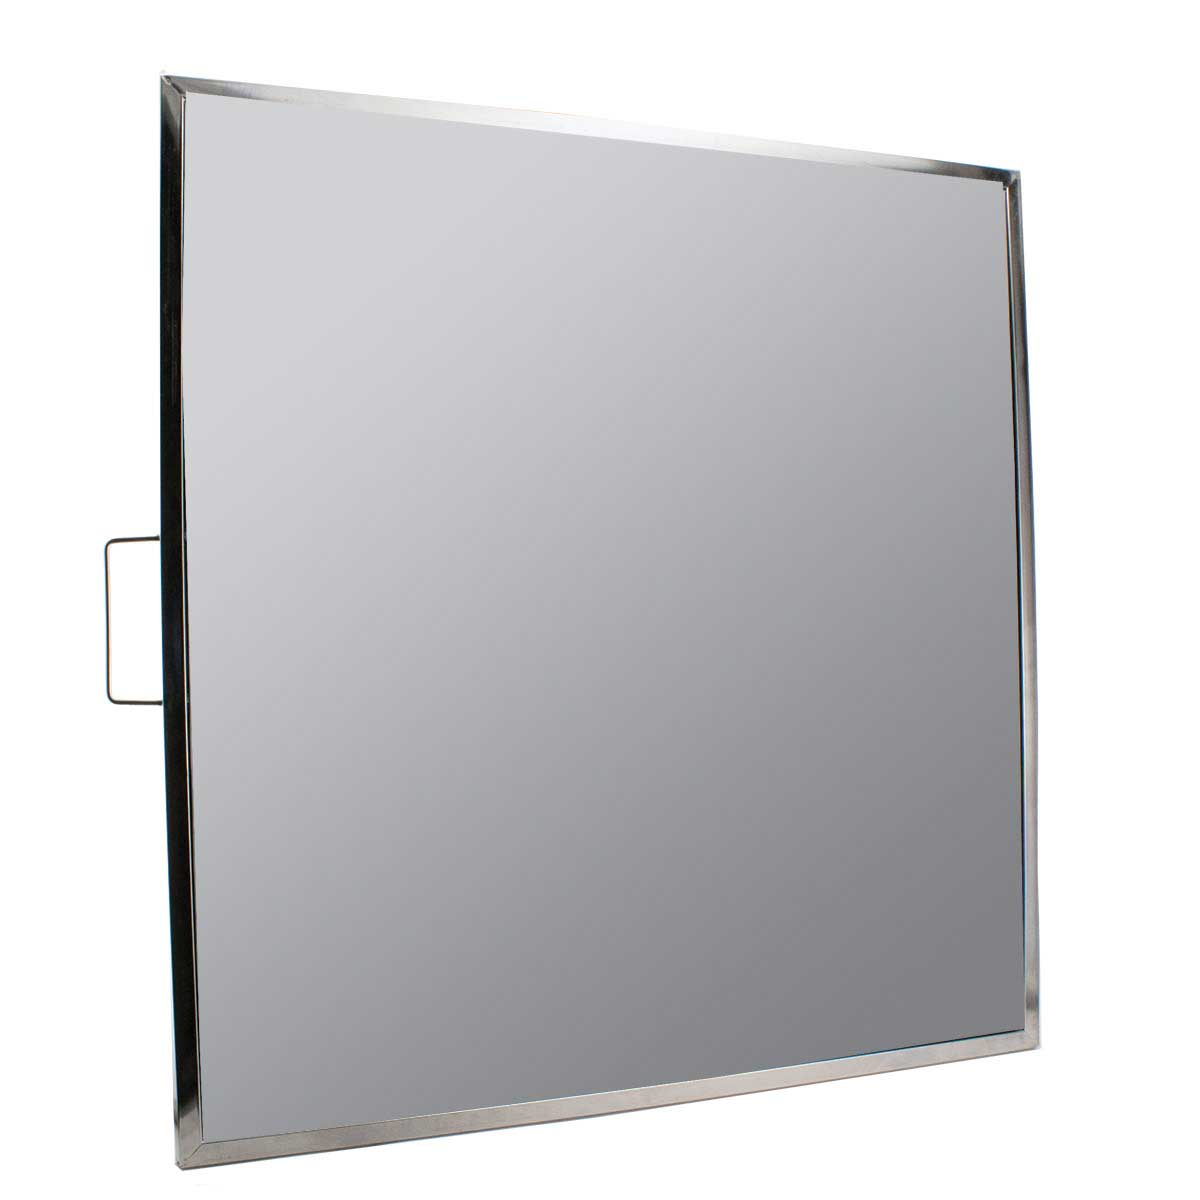 Stainless Steel Divider Panel For PBP89440